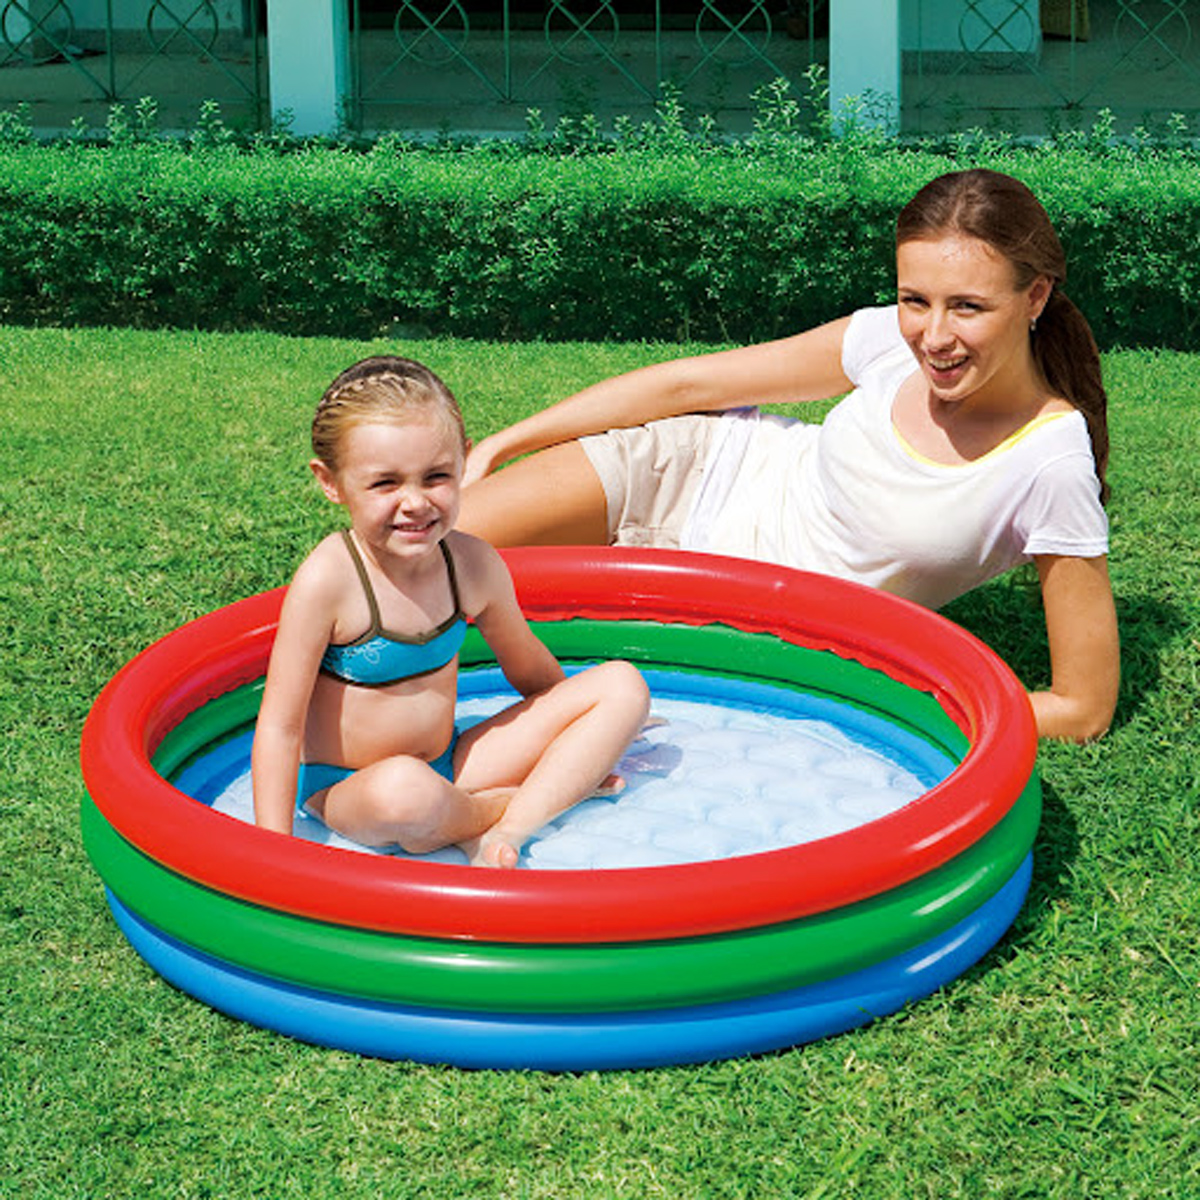 Paddling pool bestway splash play inflatable swimming for Garden paddling pool